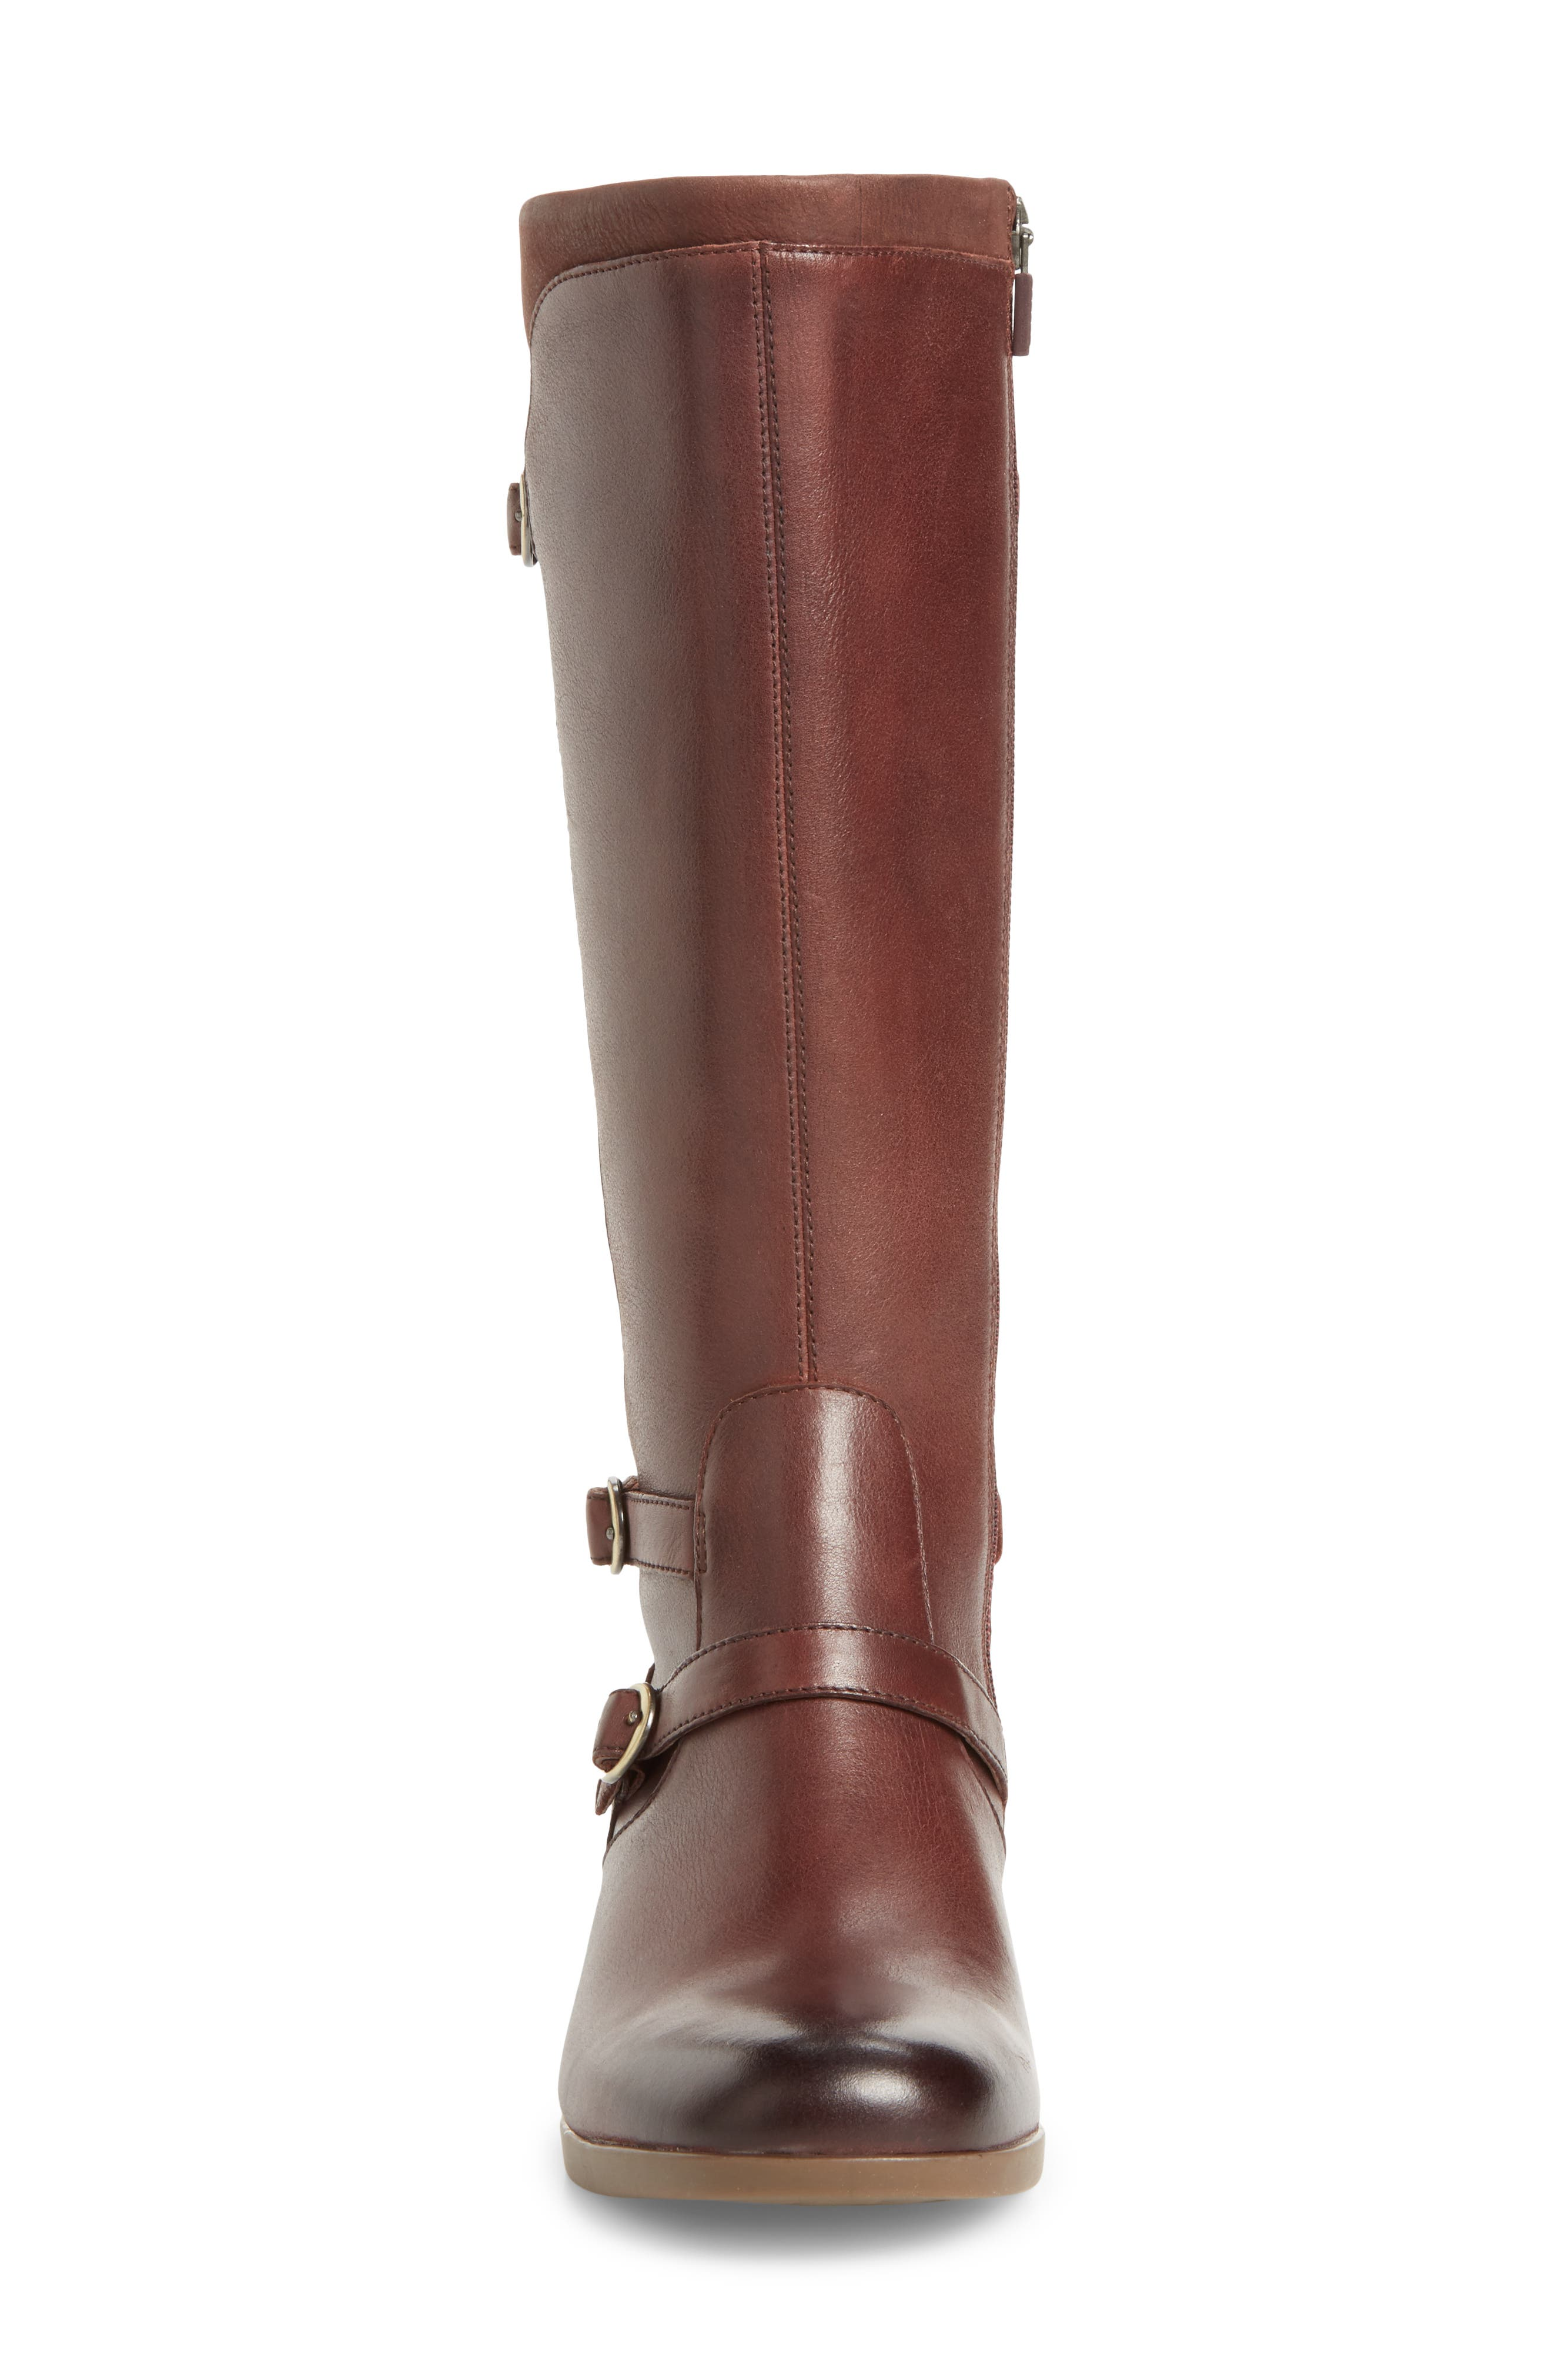 Lorna Tall Boot,                             Alternate thumbnail 4, color,                             Wine Burnished Nappa Leather